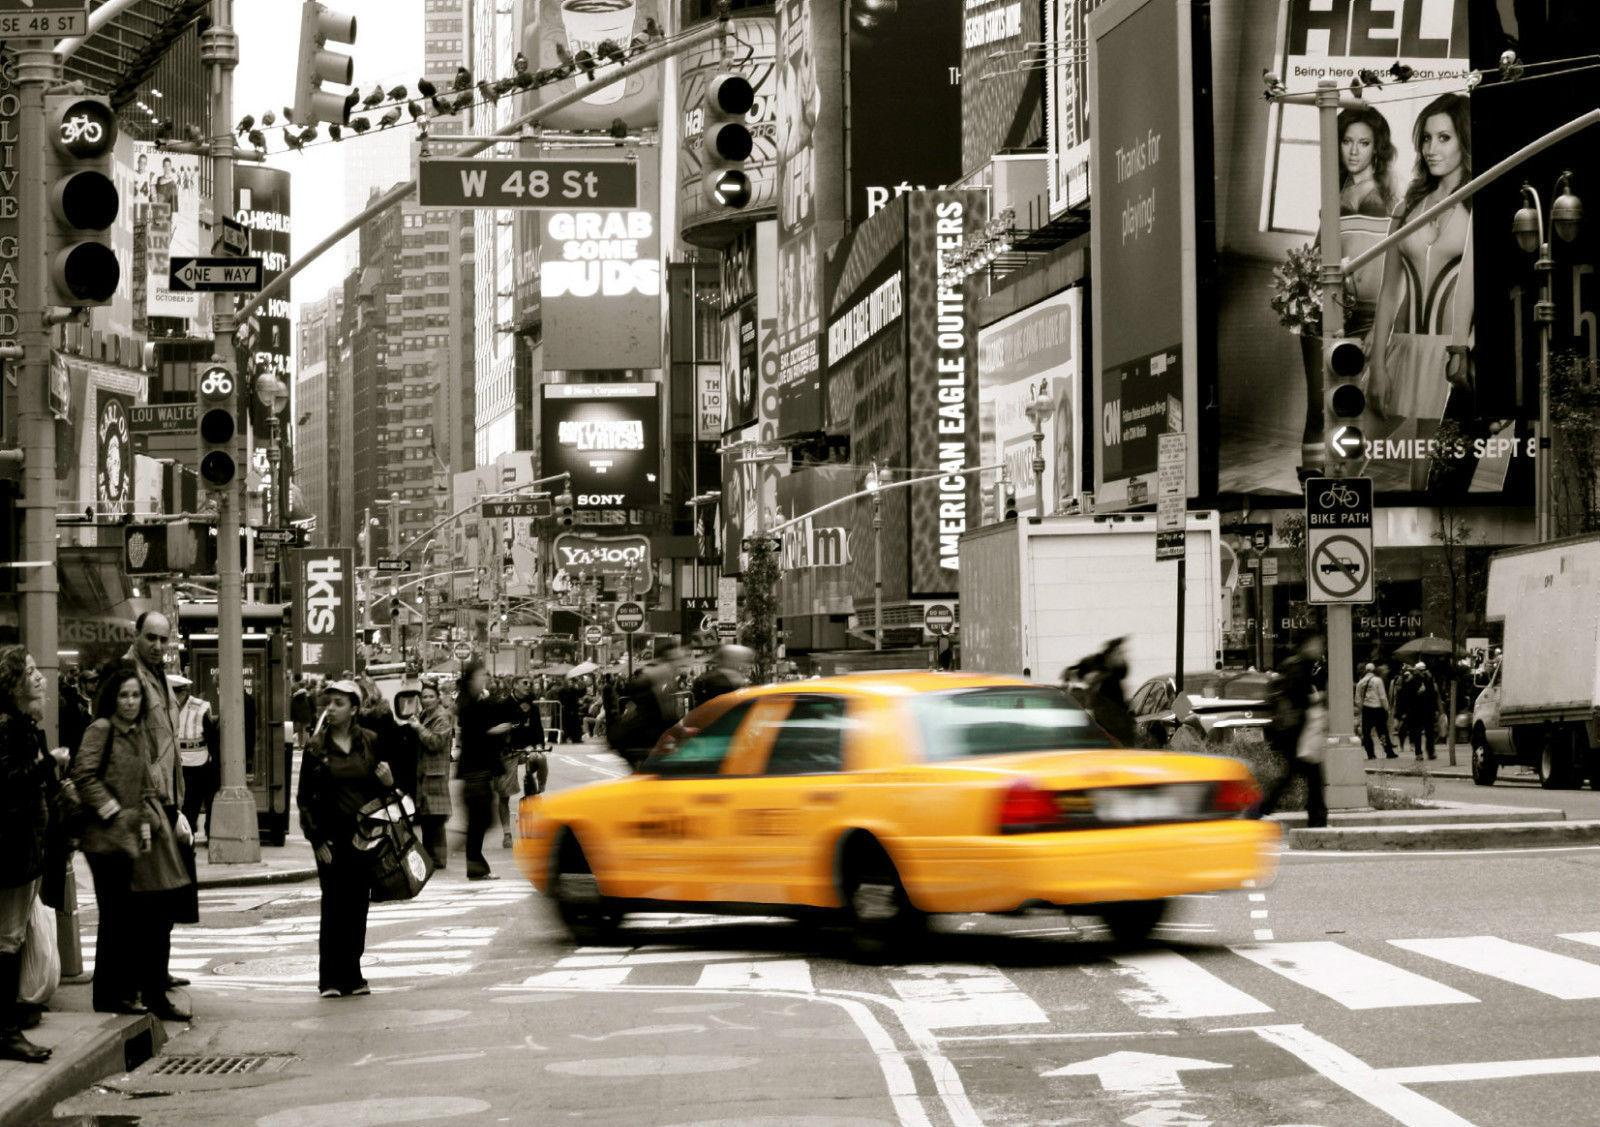 Poster New York Taxi.2019 New York Taxi Scene Art Silk Print Poster 24x36inch60x90cm 012